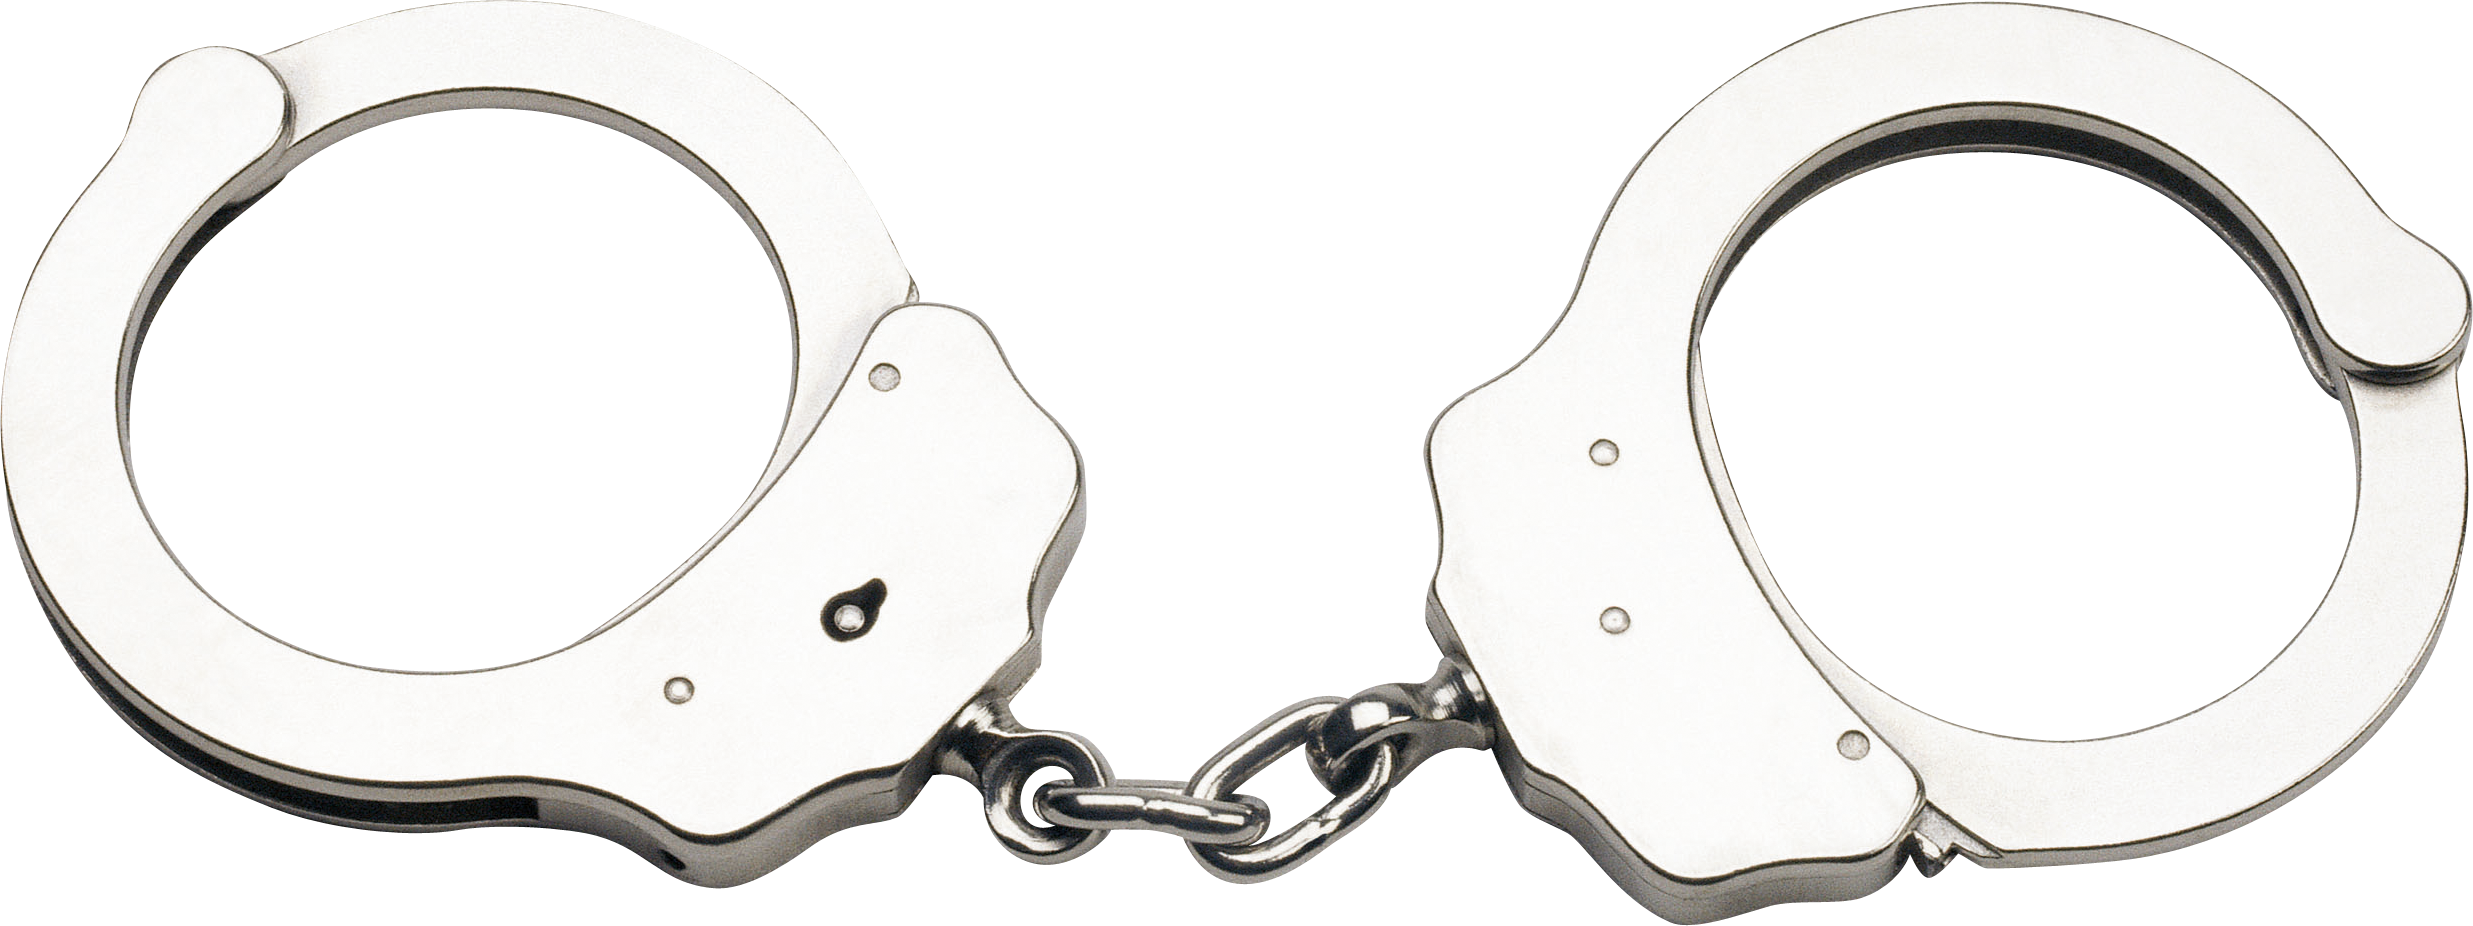 Png images free download. Handcuffs clipart gun